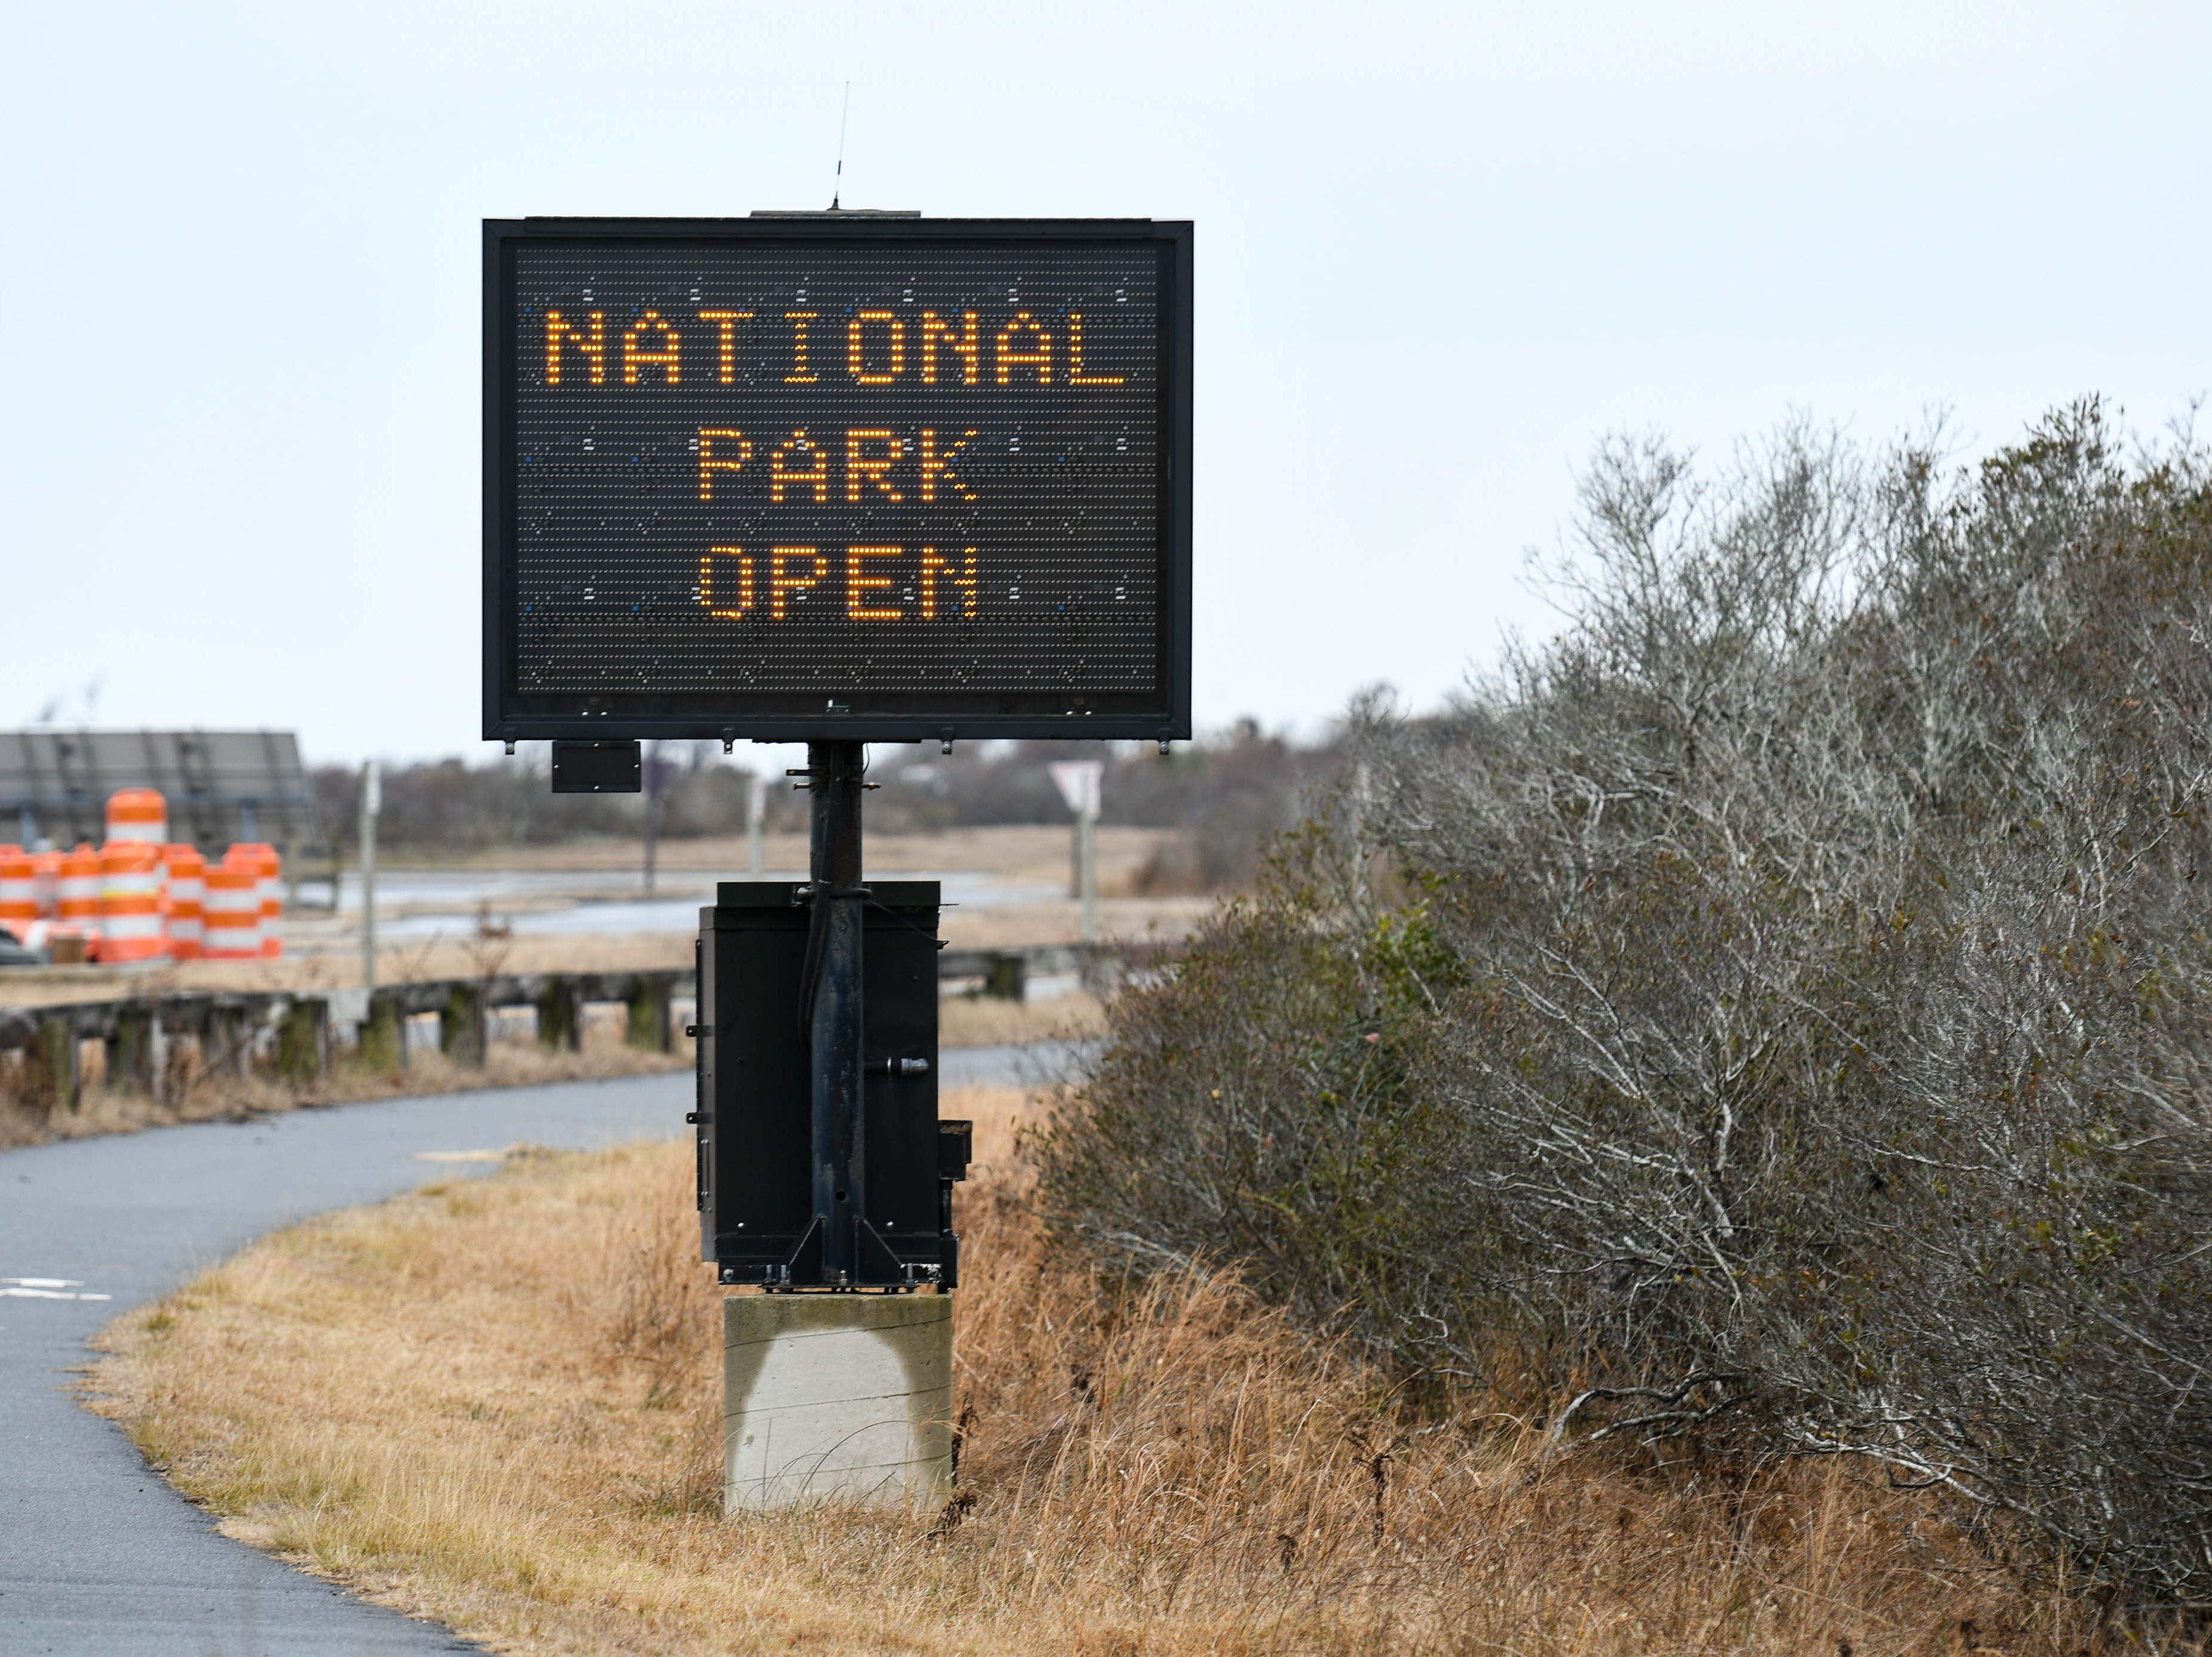 Signs notify visitors of a lack of facilities at Assateague National Park on Thursday, Jan 3, 2018. The park remains open during the federal government shutdown, however visitors services are not being provided.